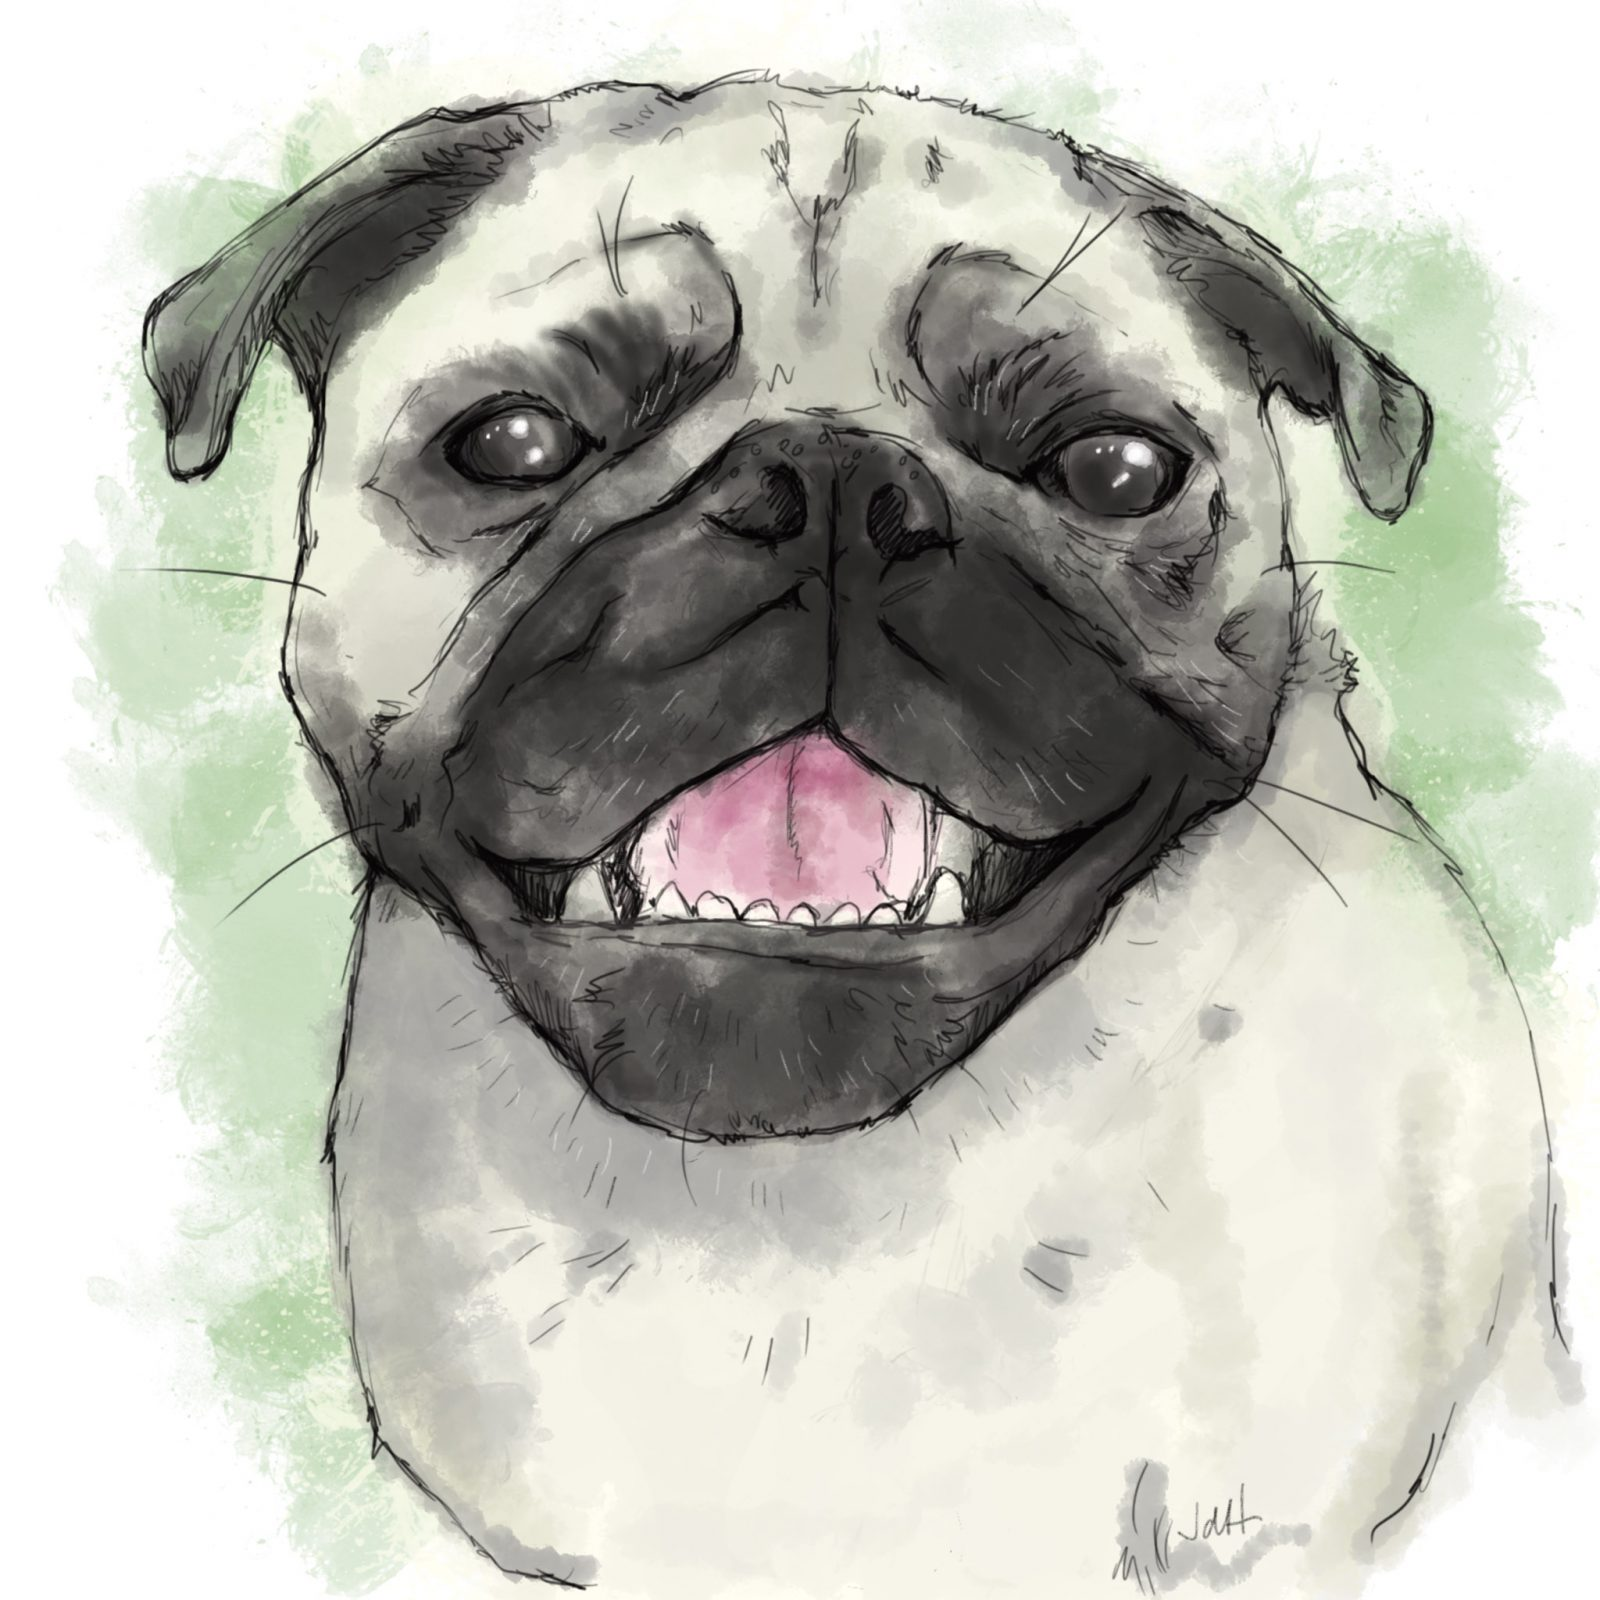 Dog illustration of Pug.